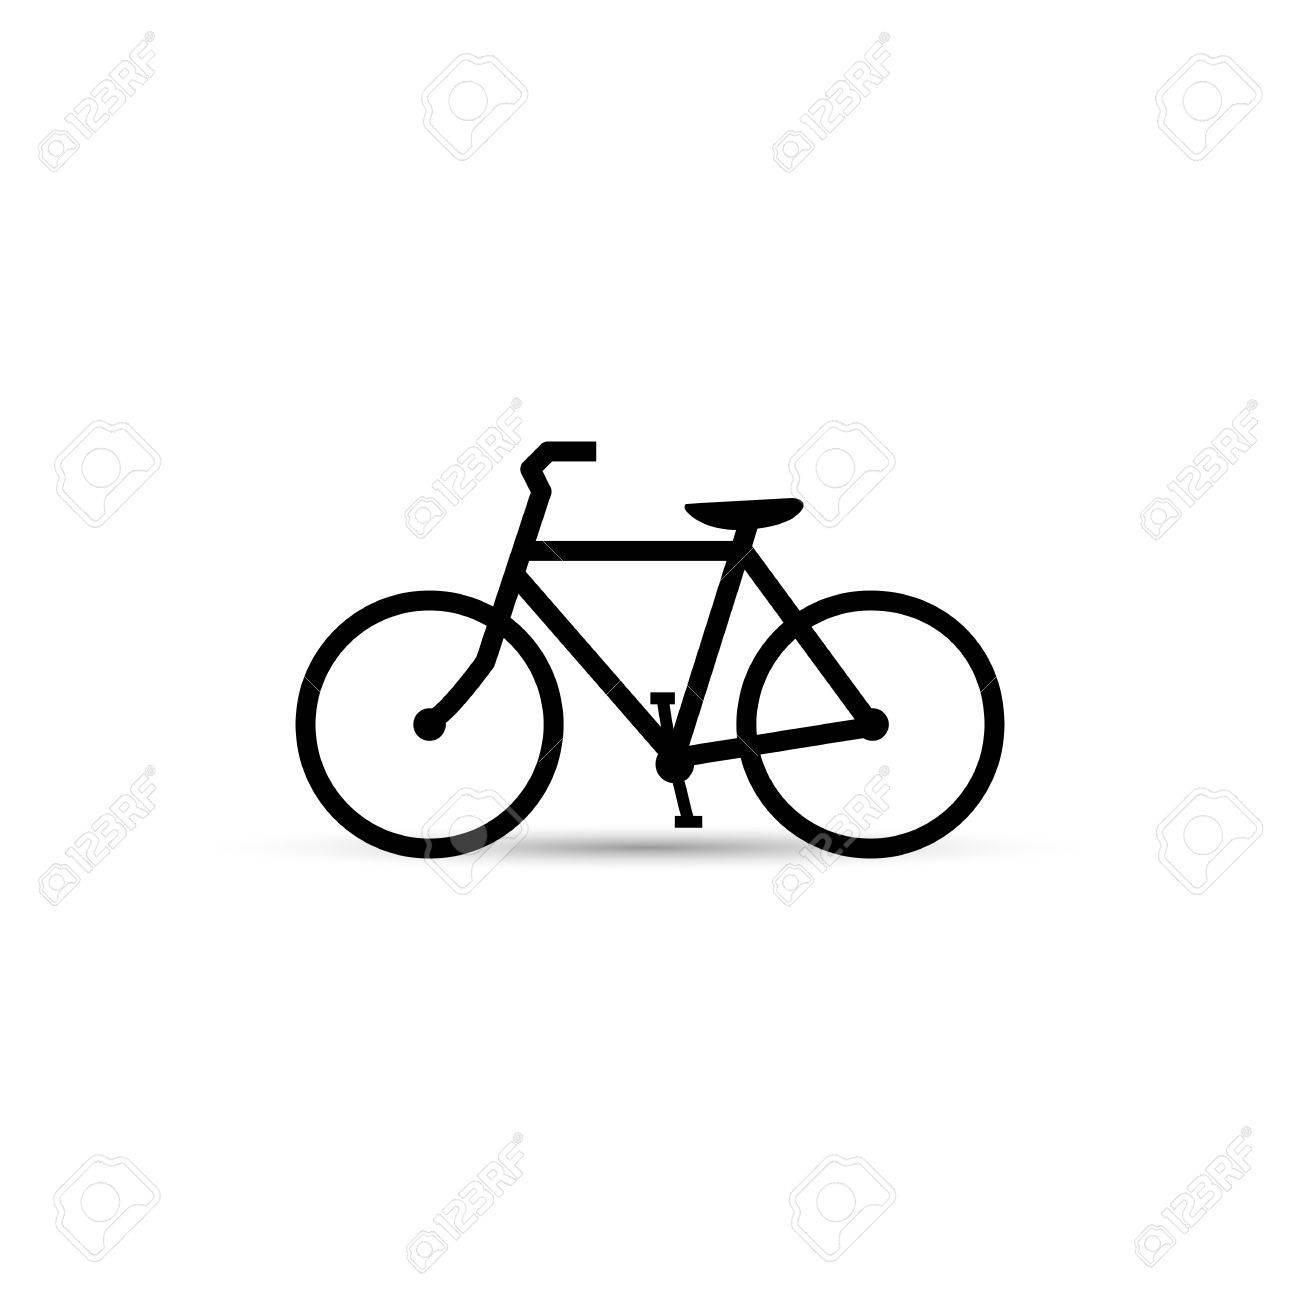 Illustration of a bicycle isolated on a white background. - 29339675